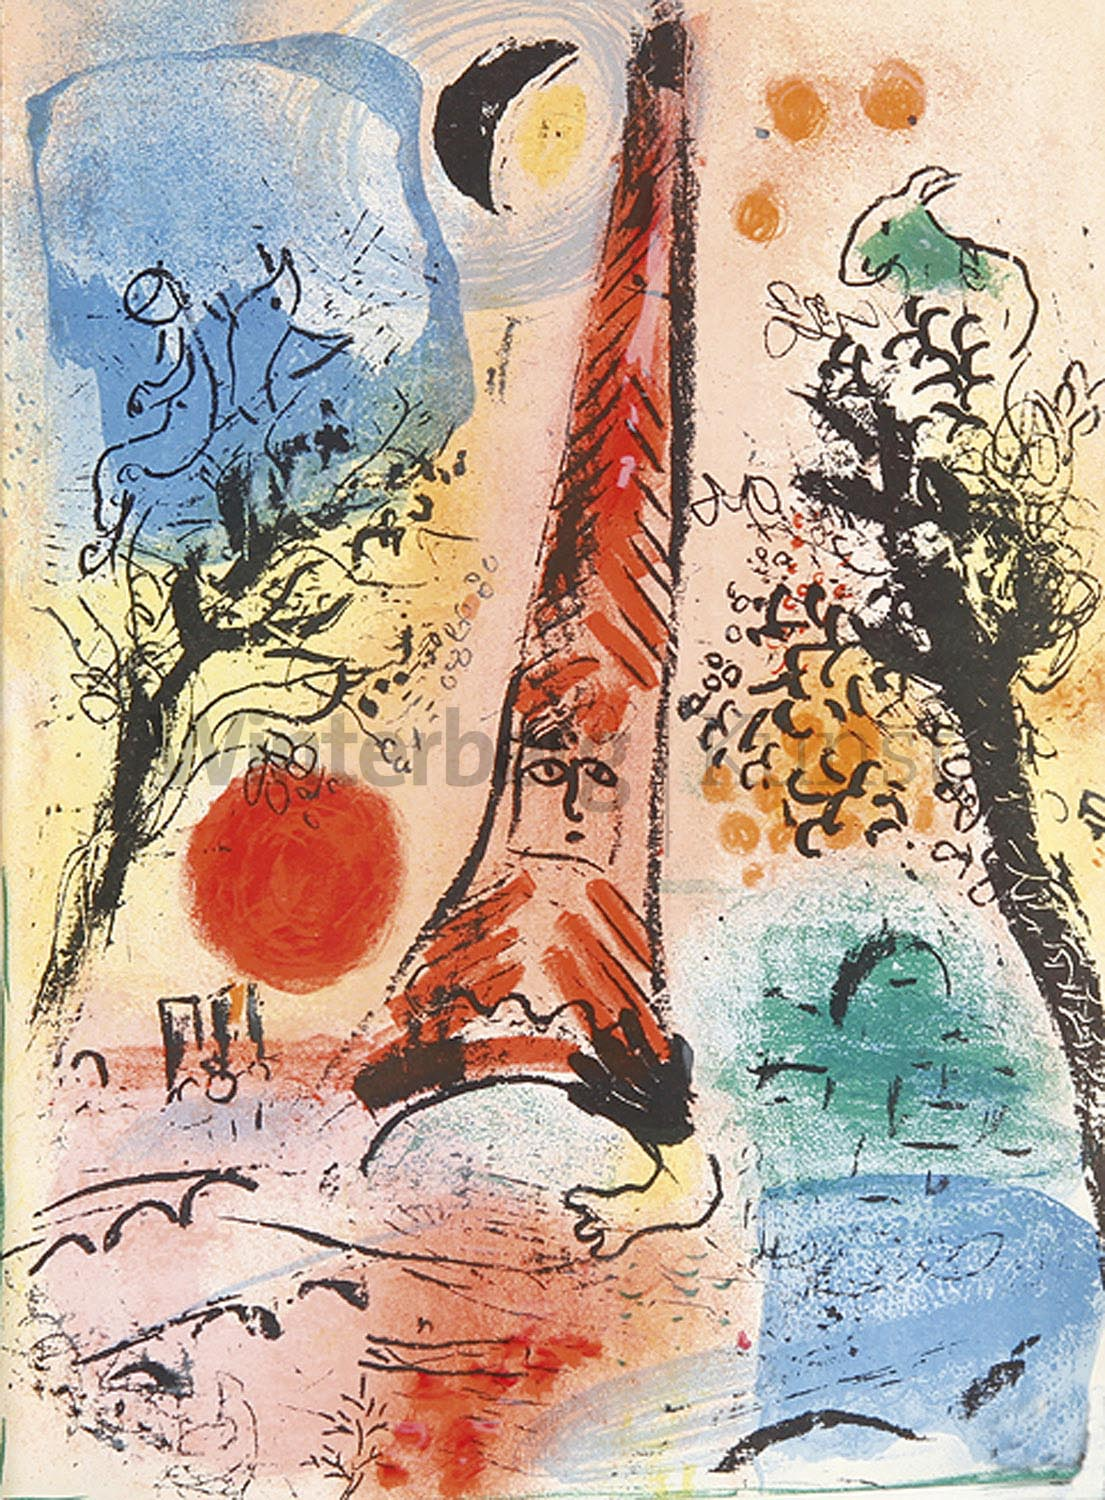 MARC CHAGALL Witebsk 1887 - 1985 Vence: Chagall, Lithograph I-IV.